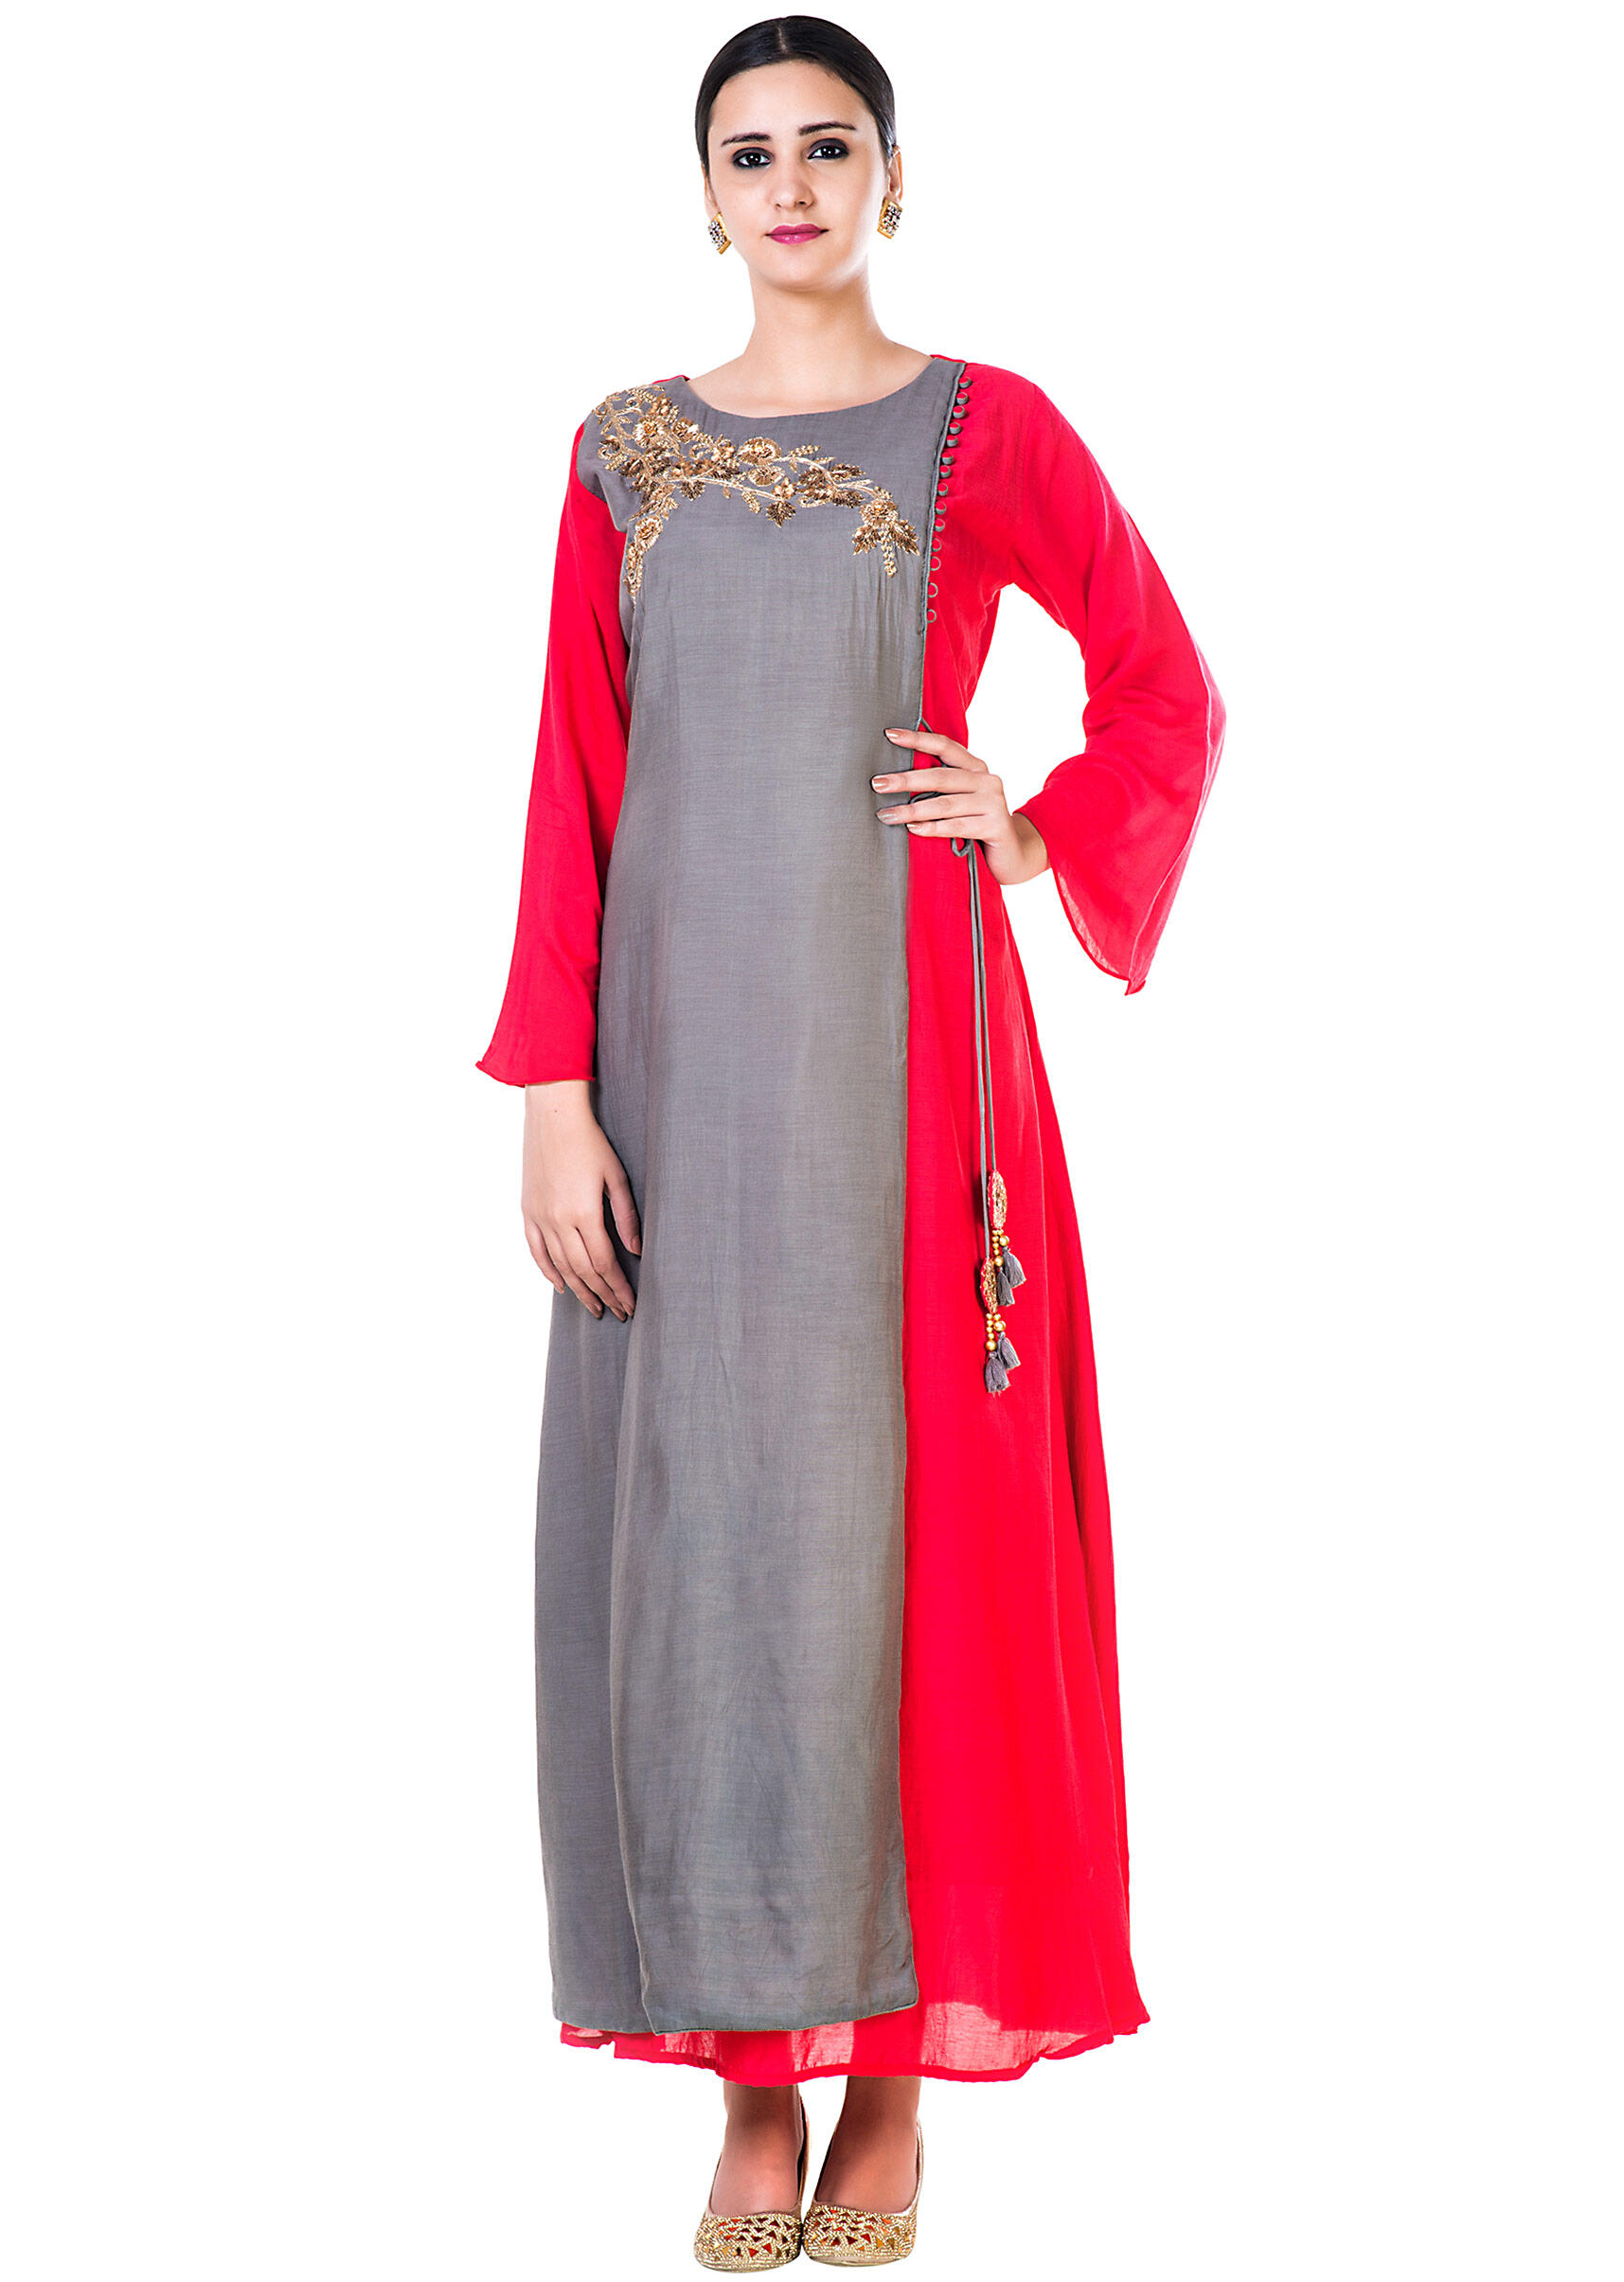 271f6aa704 Hand Emroidered Grey and Red Gown